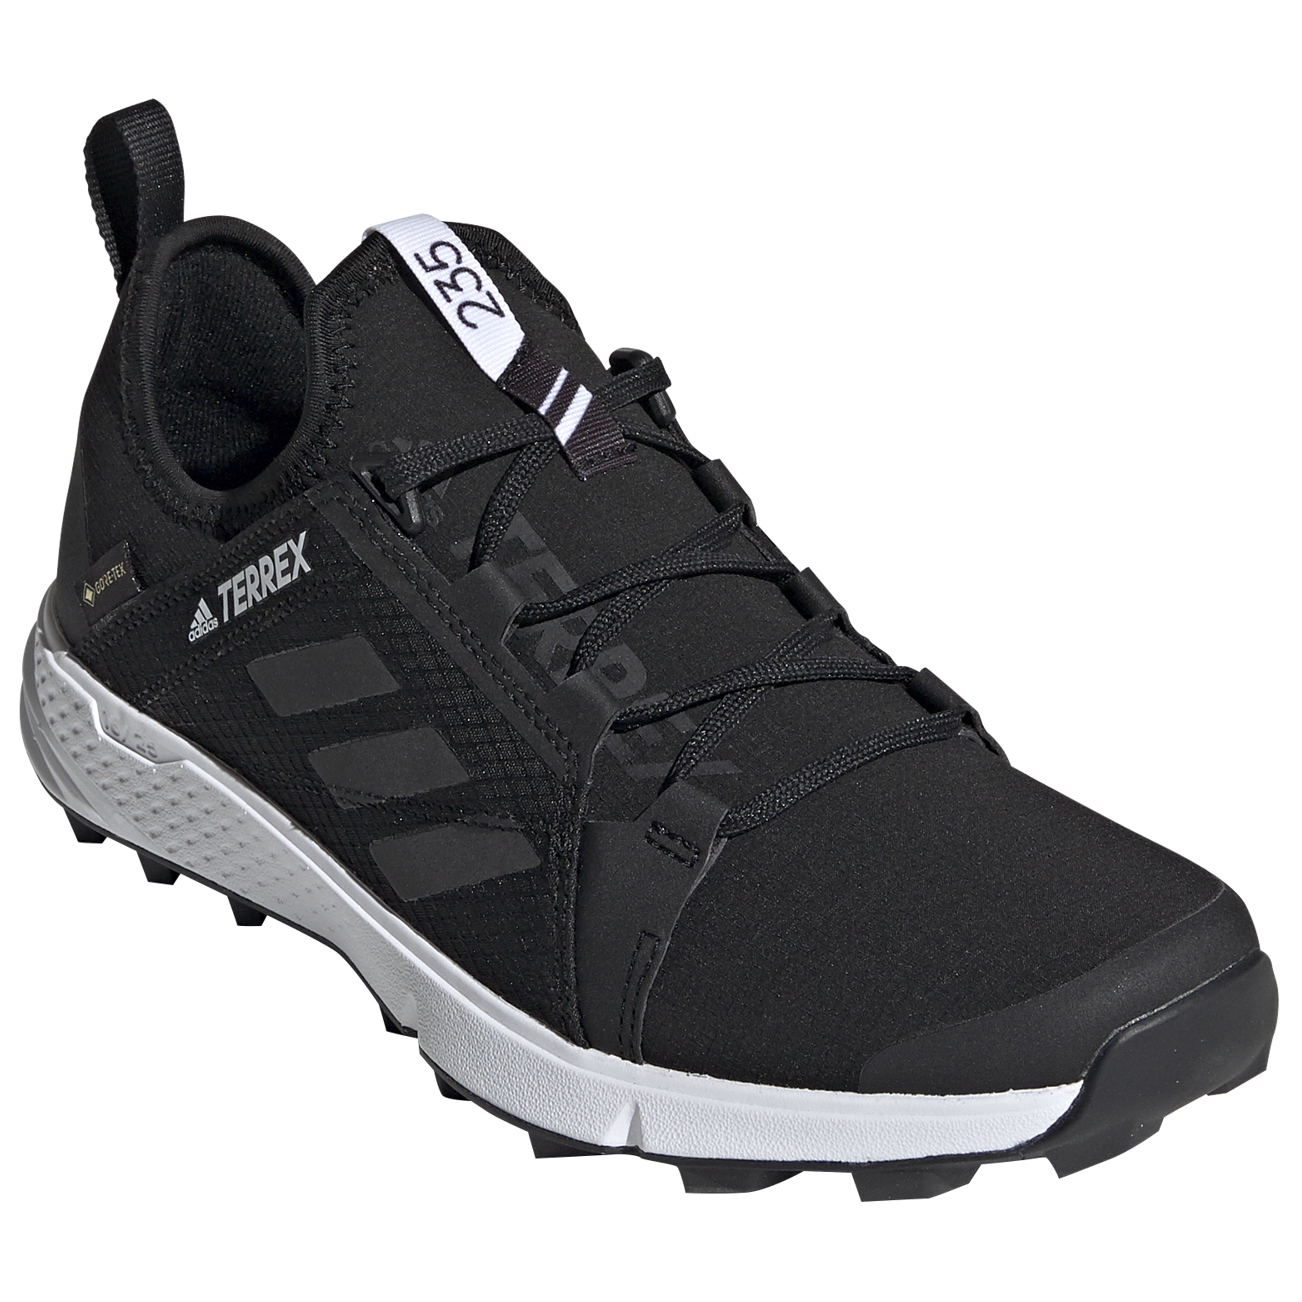 Adidas Terrex Agravic Speed Trail Running Shoes Womens